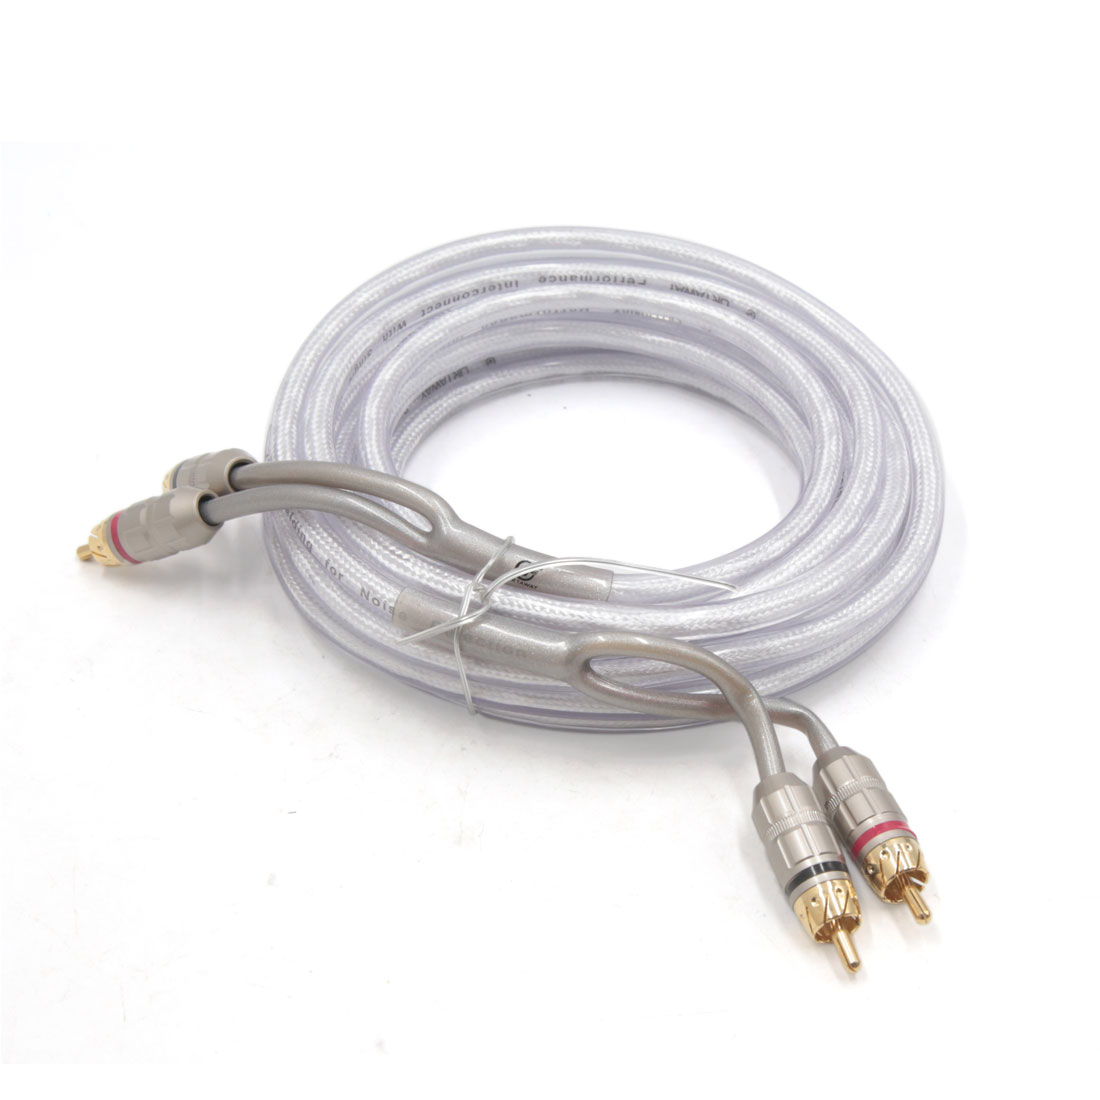 5m Length Male to Male Copper RCA Stereo Audio Cord Cable Wire Adapter for Car